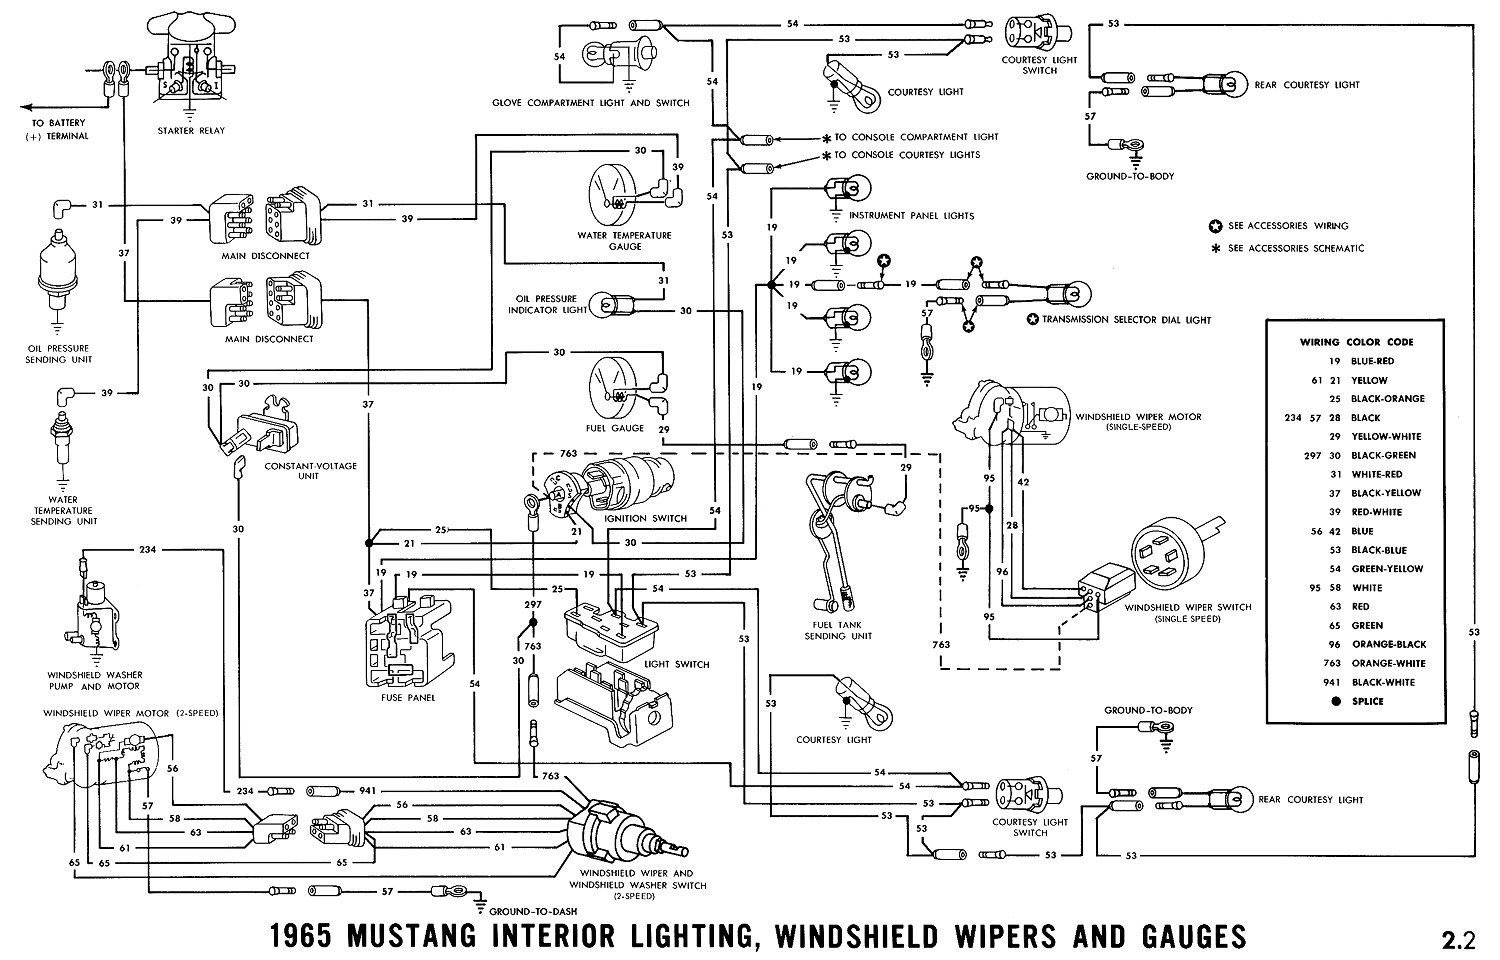 1965g 1965 mustang wiring diagrams average joe restoration 1965 ford mustang wiring diagrams at sewacar.co